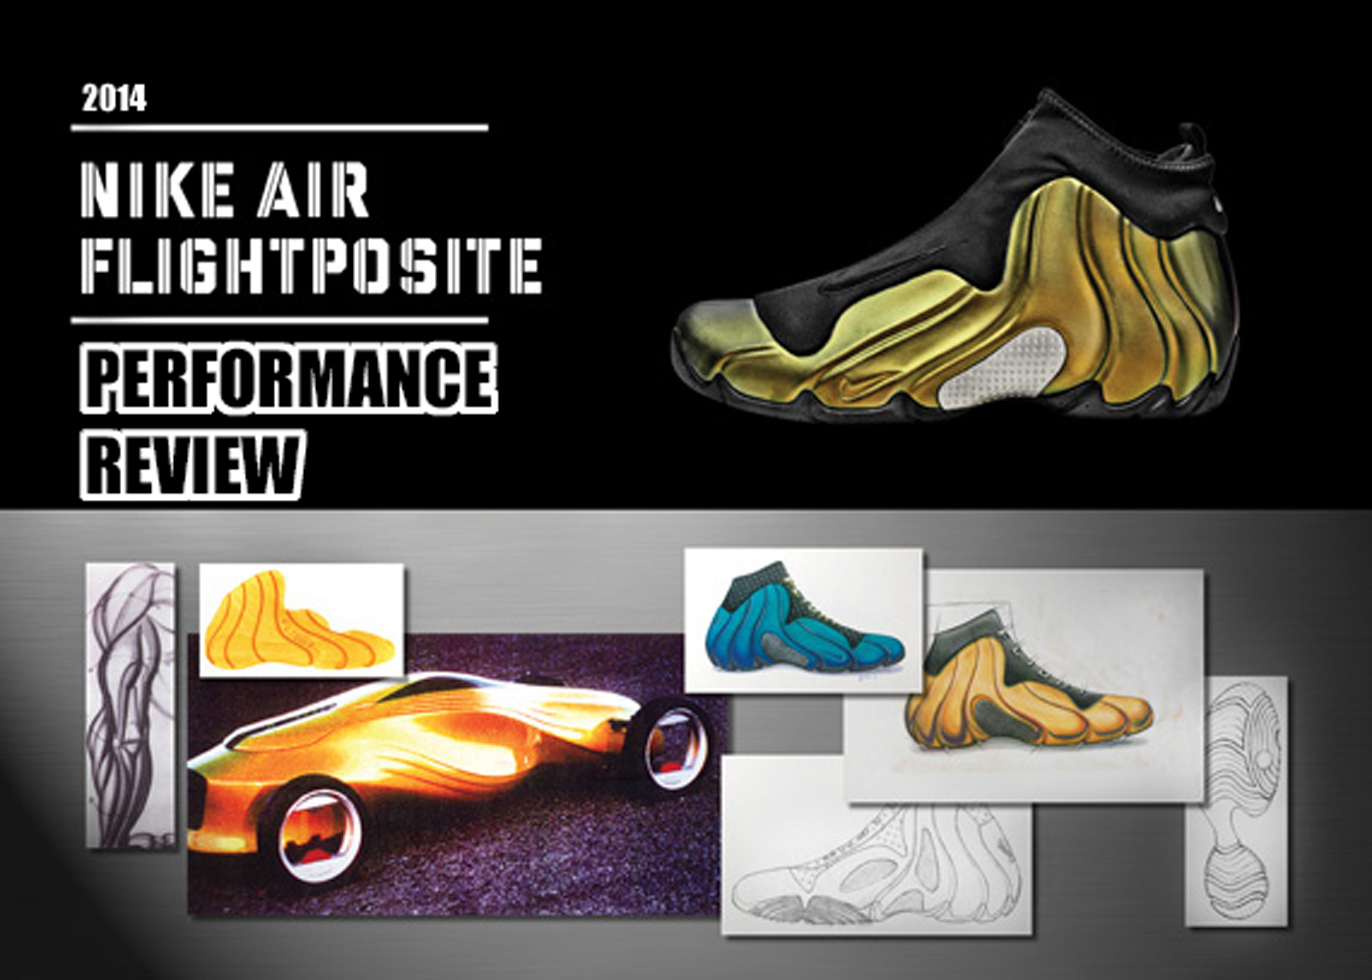 Nike Air Flightposite 2014 Performance Review Main